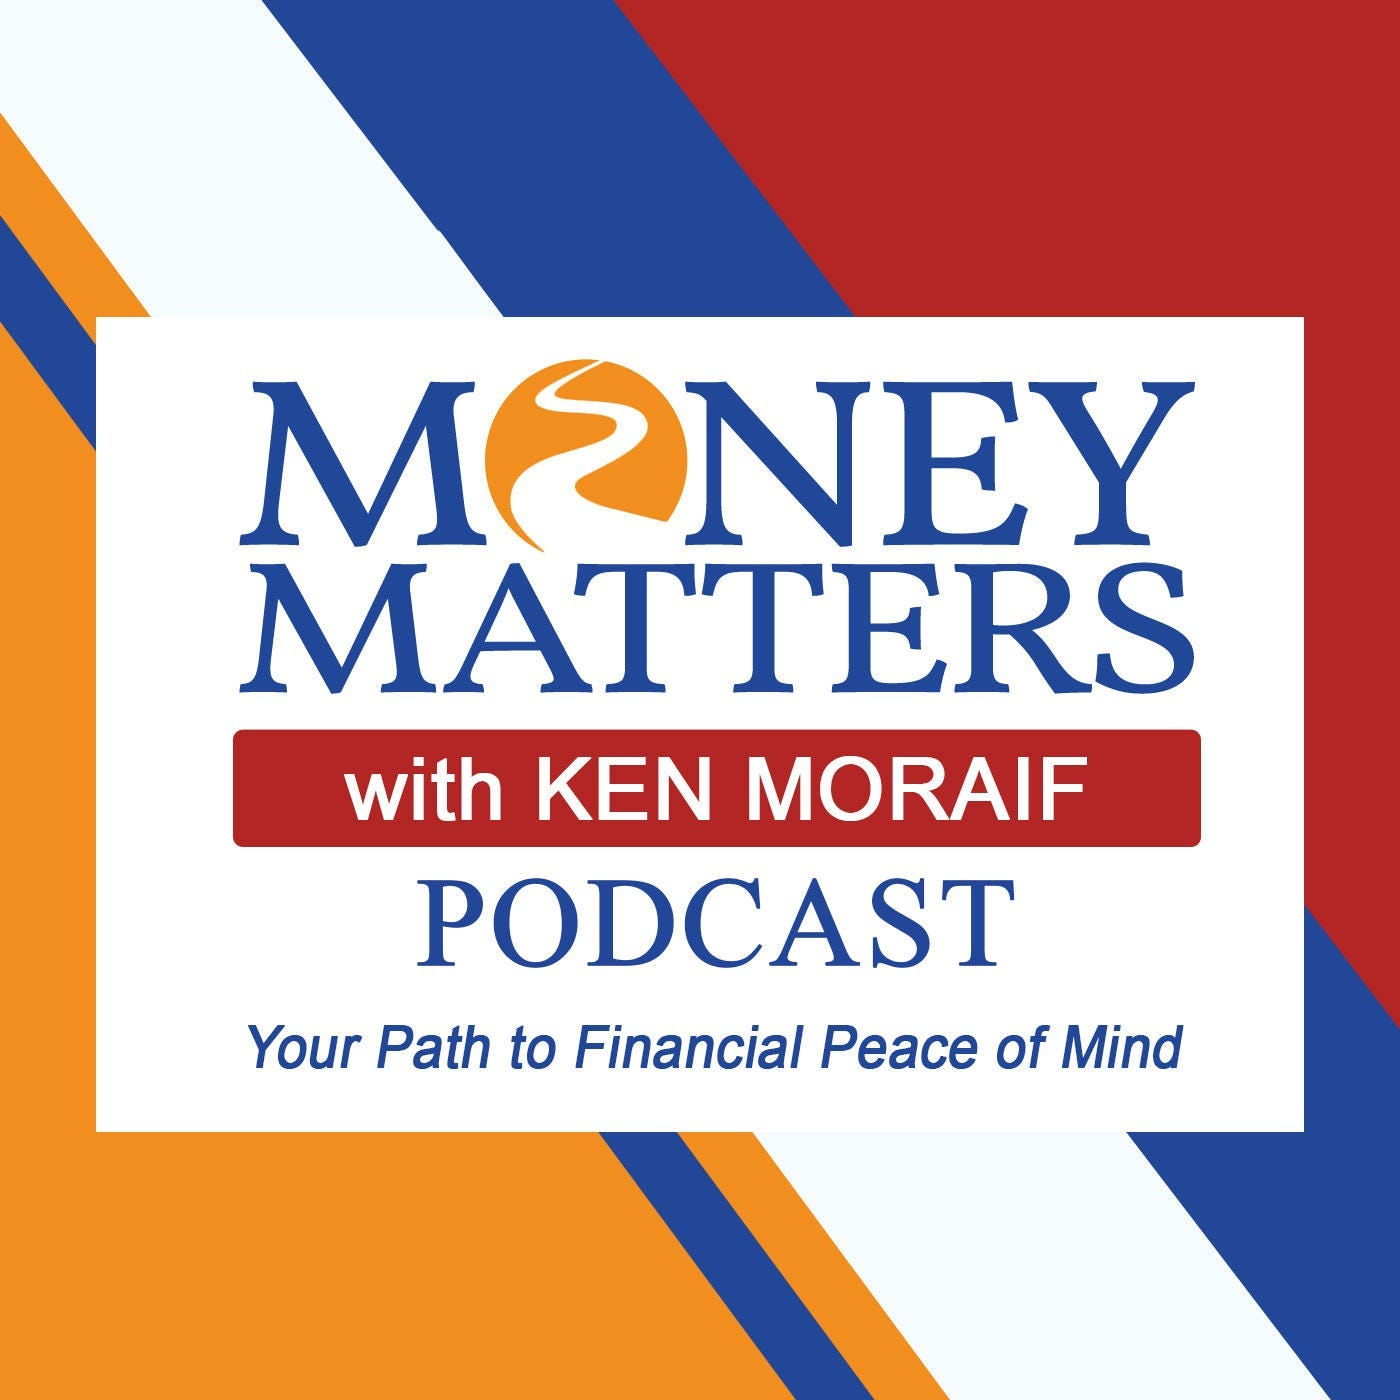 Money Matters with Ken Moraif Podcast